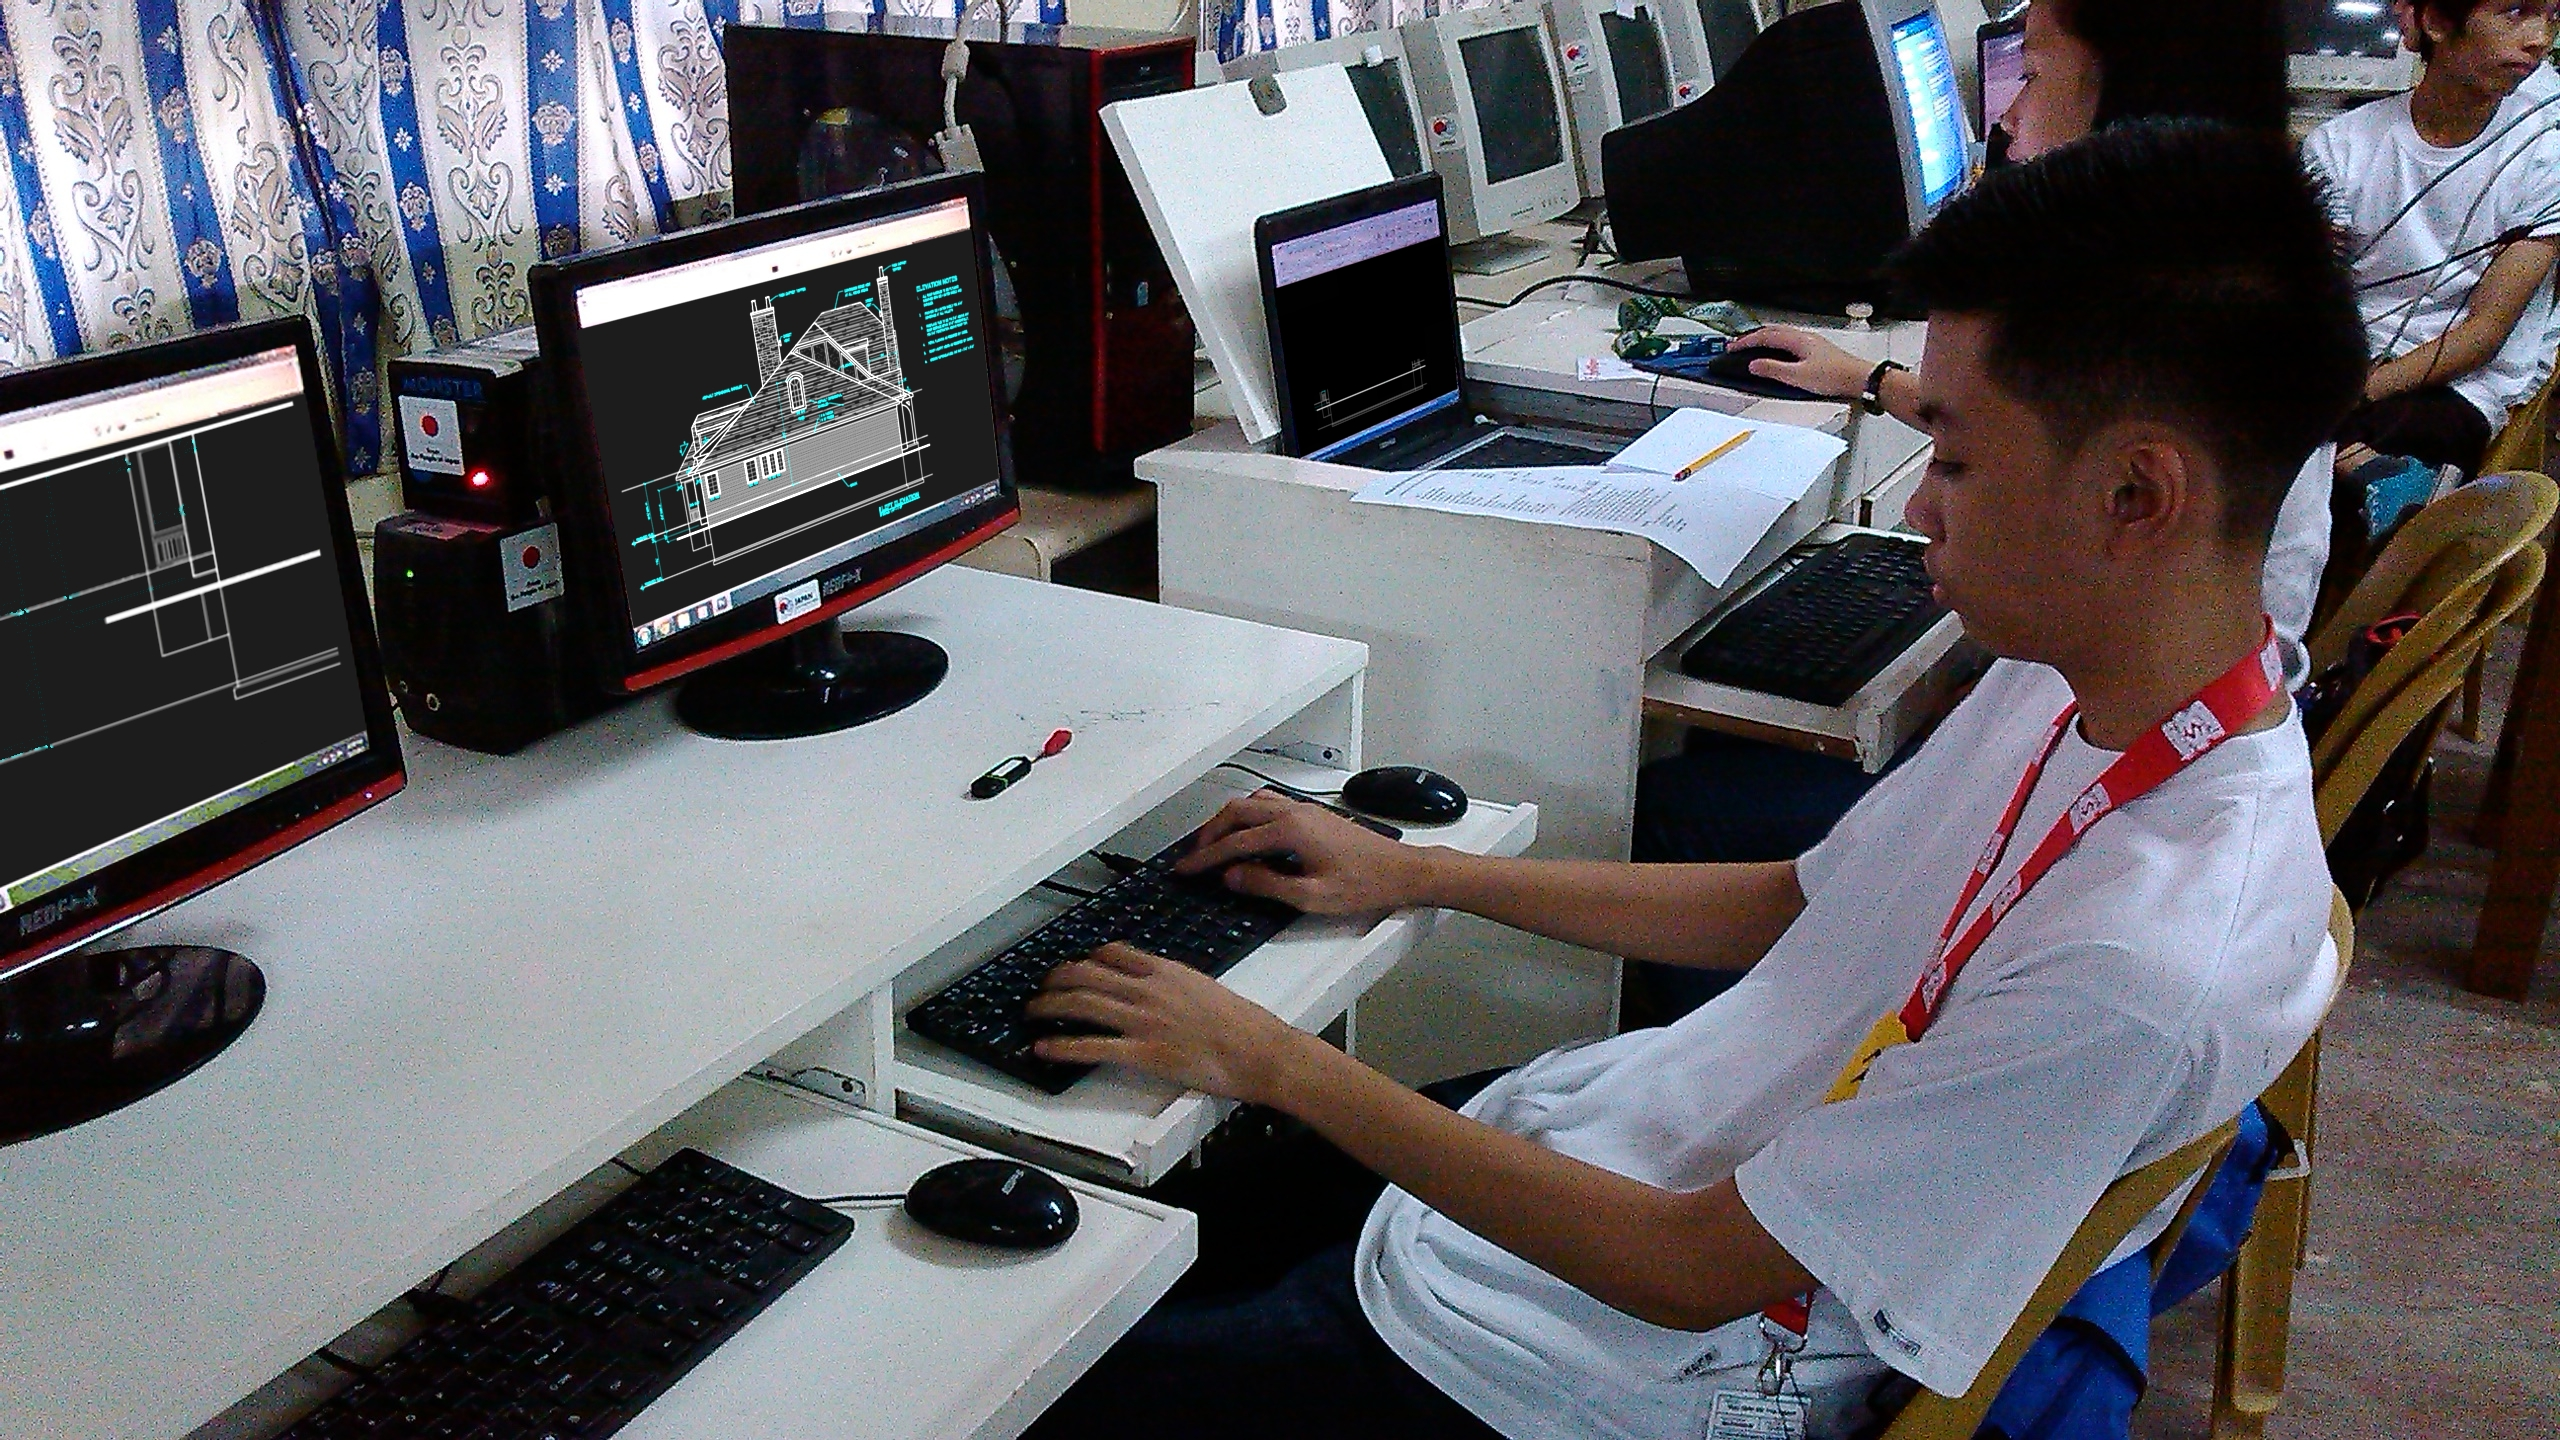 calumpang_nhs_ict_autocad_activity